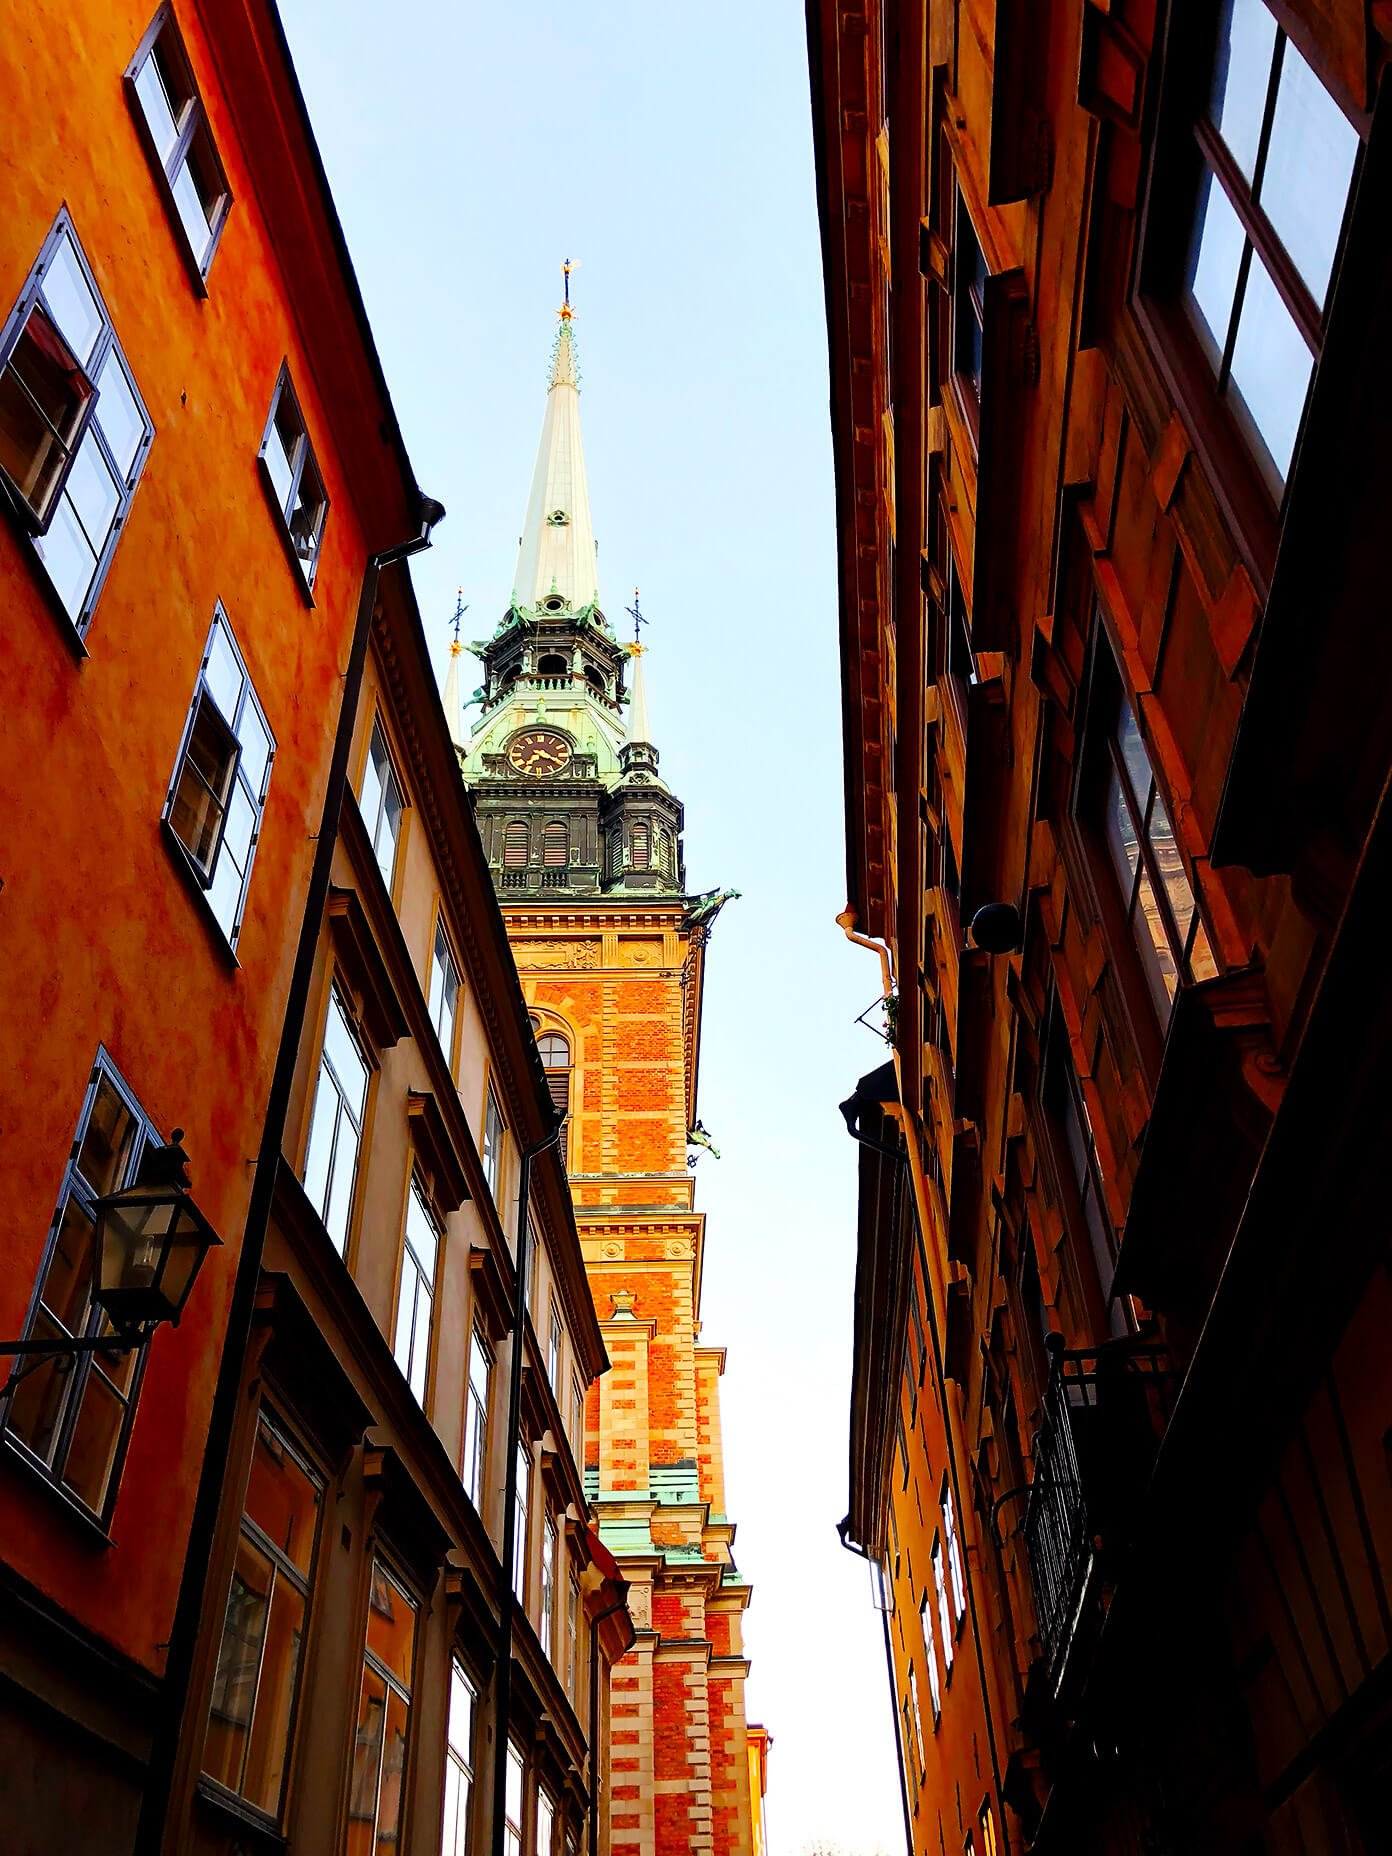 Church Spire in Gamla Stan, Stockhom, Sweden